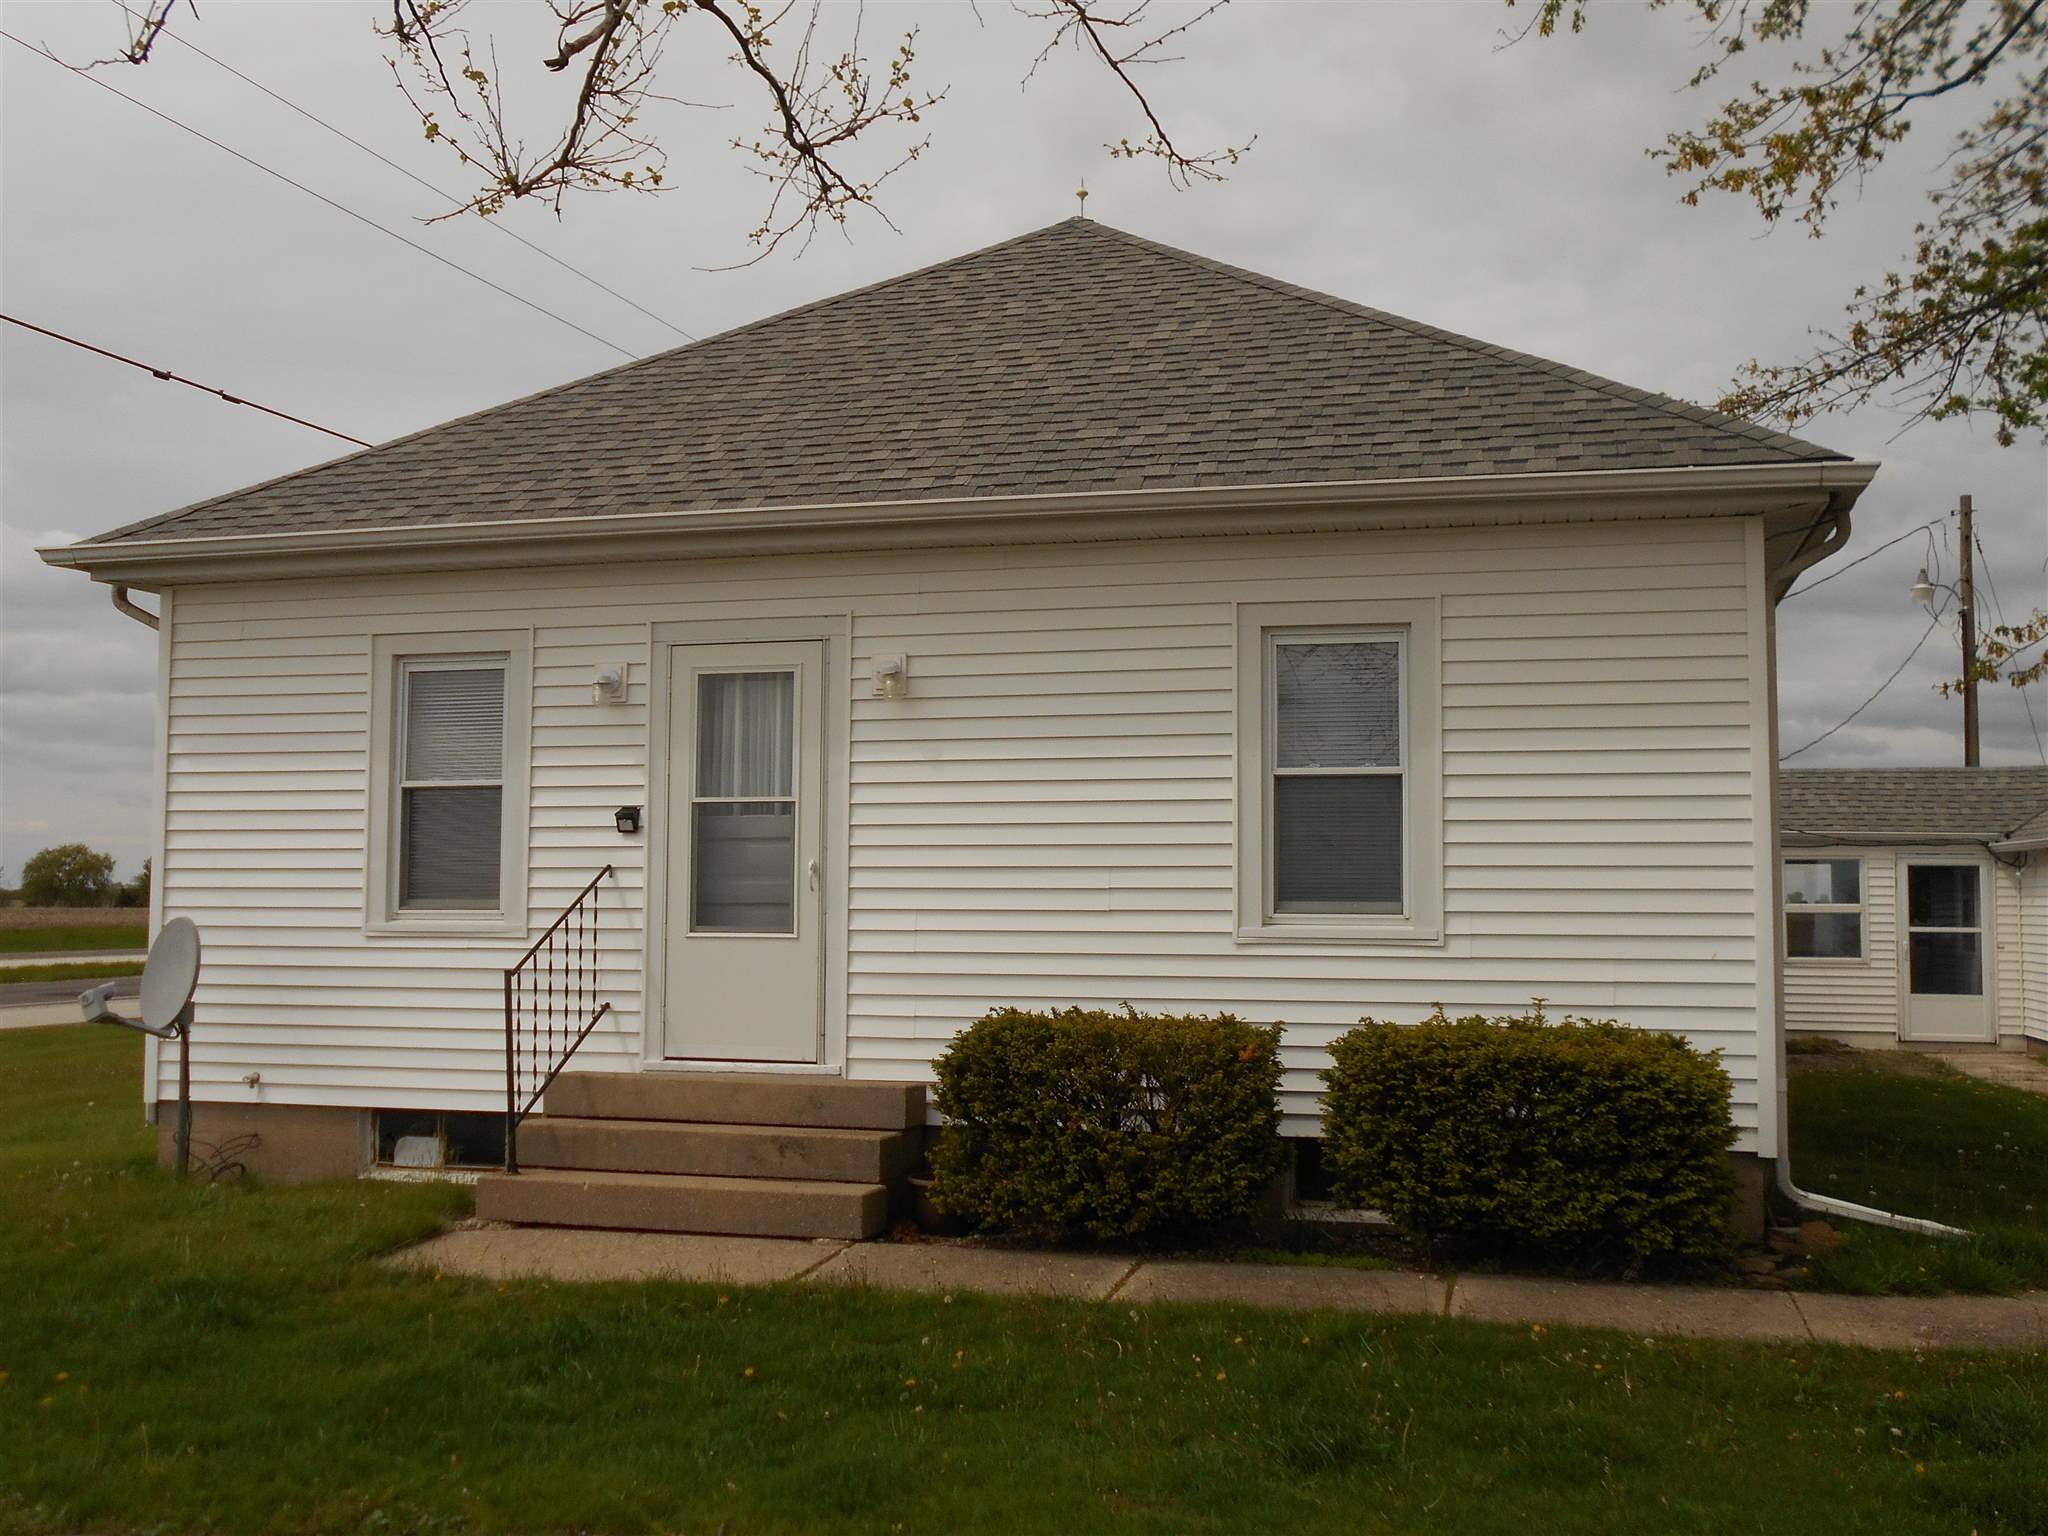 20745 US HWY 67 Property Photo - Good Hope, IL real estate listing